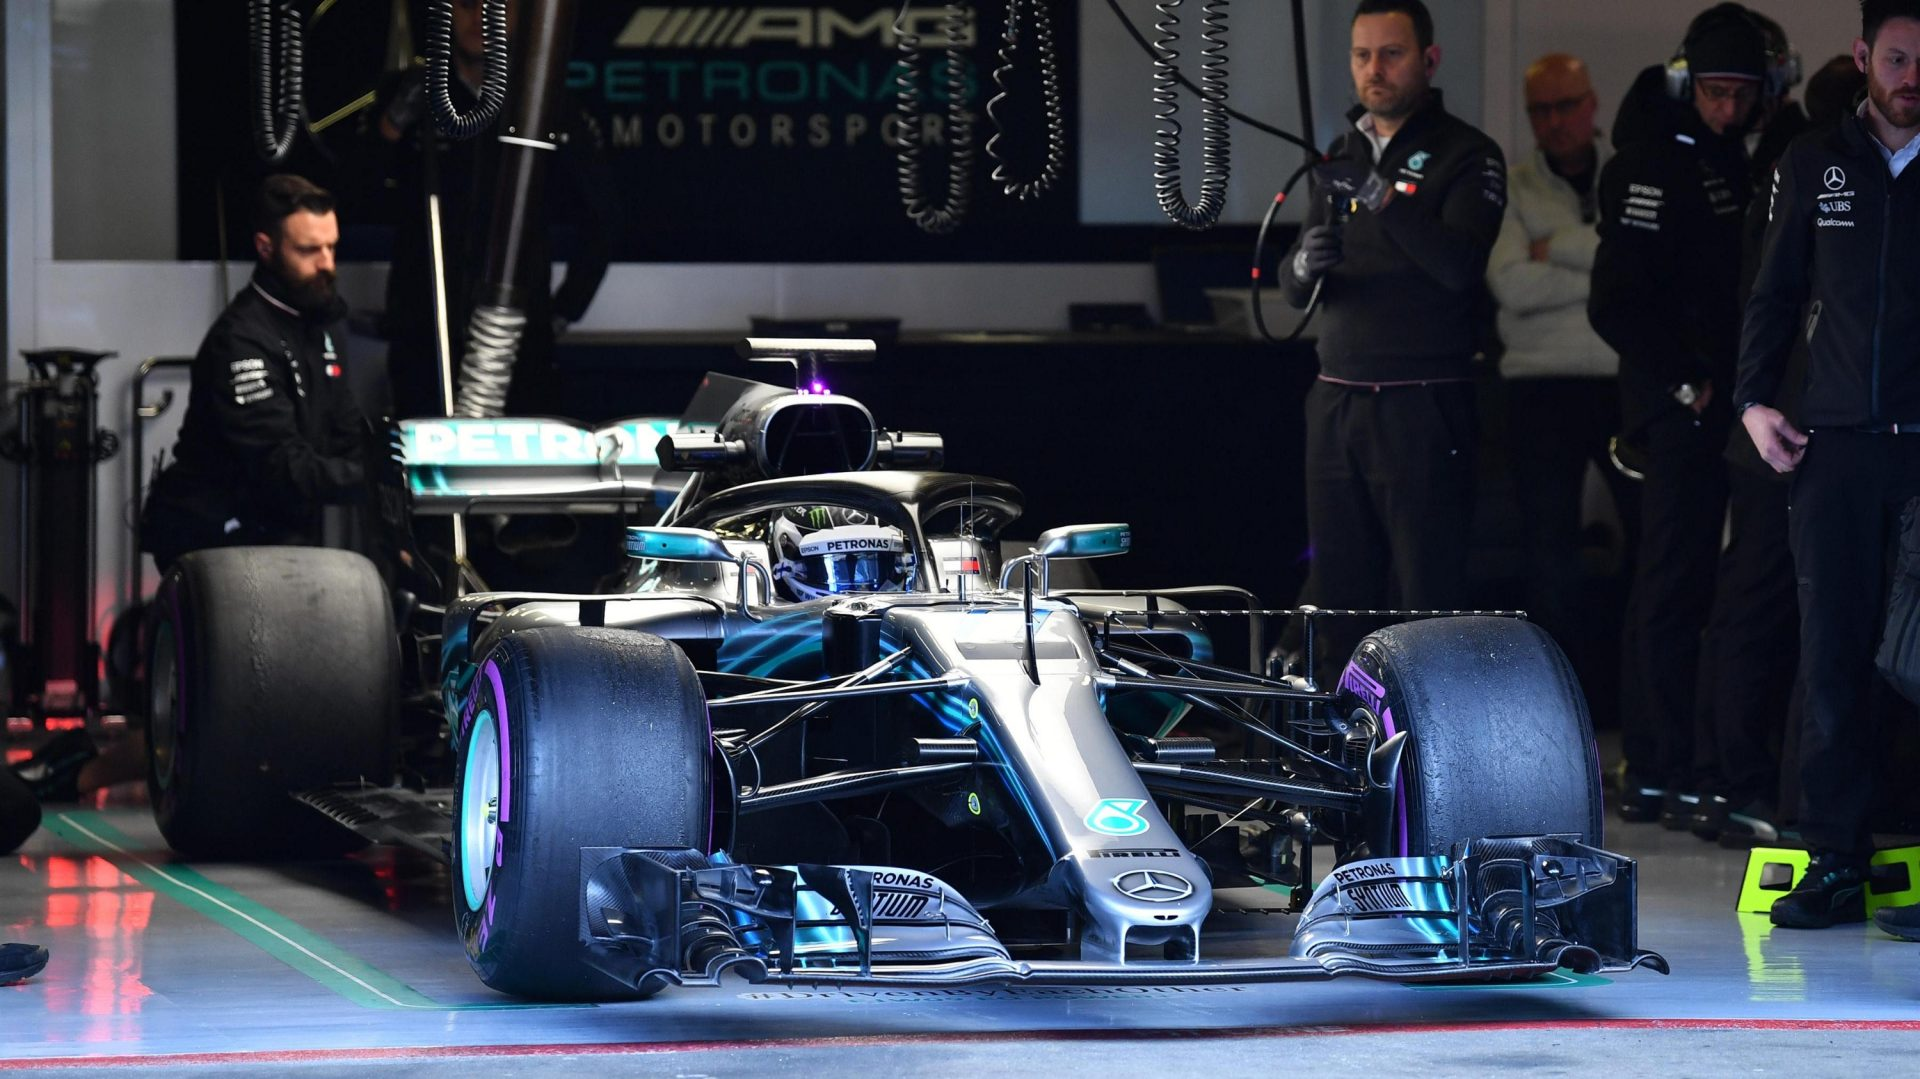 https://www.formula1.com/content/fom-website/en/latest/features/2018/3/gallery--day-3-of-the-second-barcelona-test/_jcr_content/featureContent/manual_gallery/image1.img.1920.medium.jpg/1520500265921.jpg